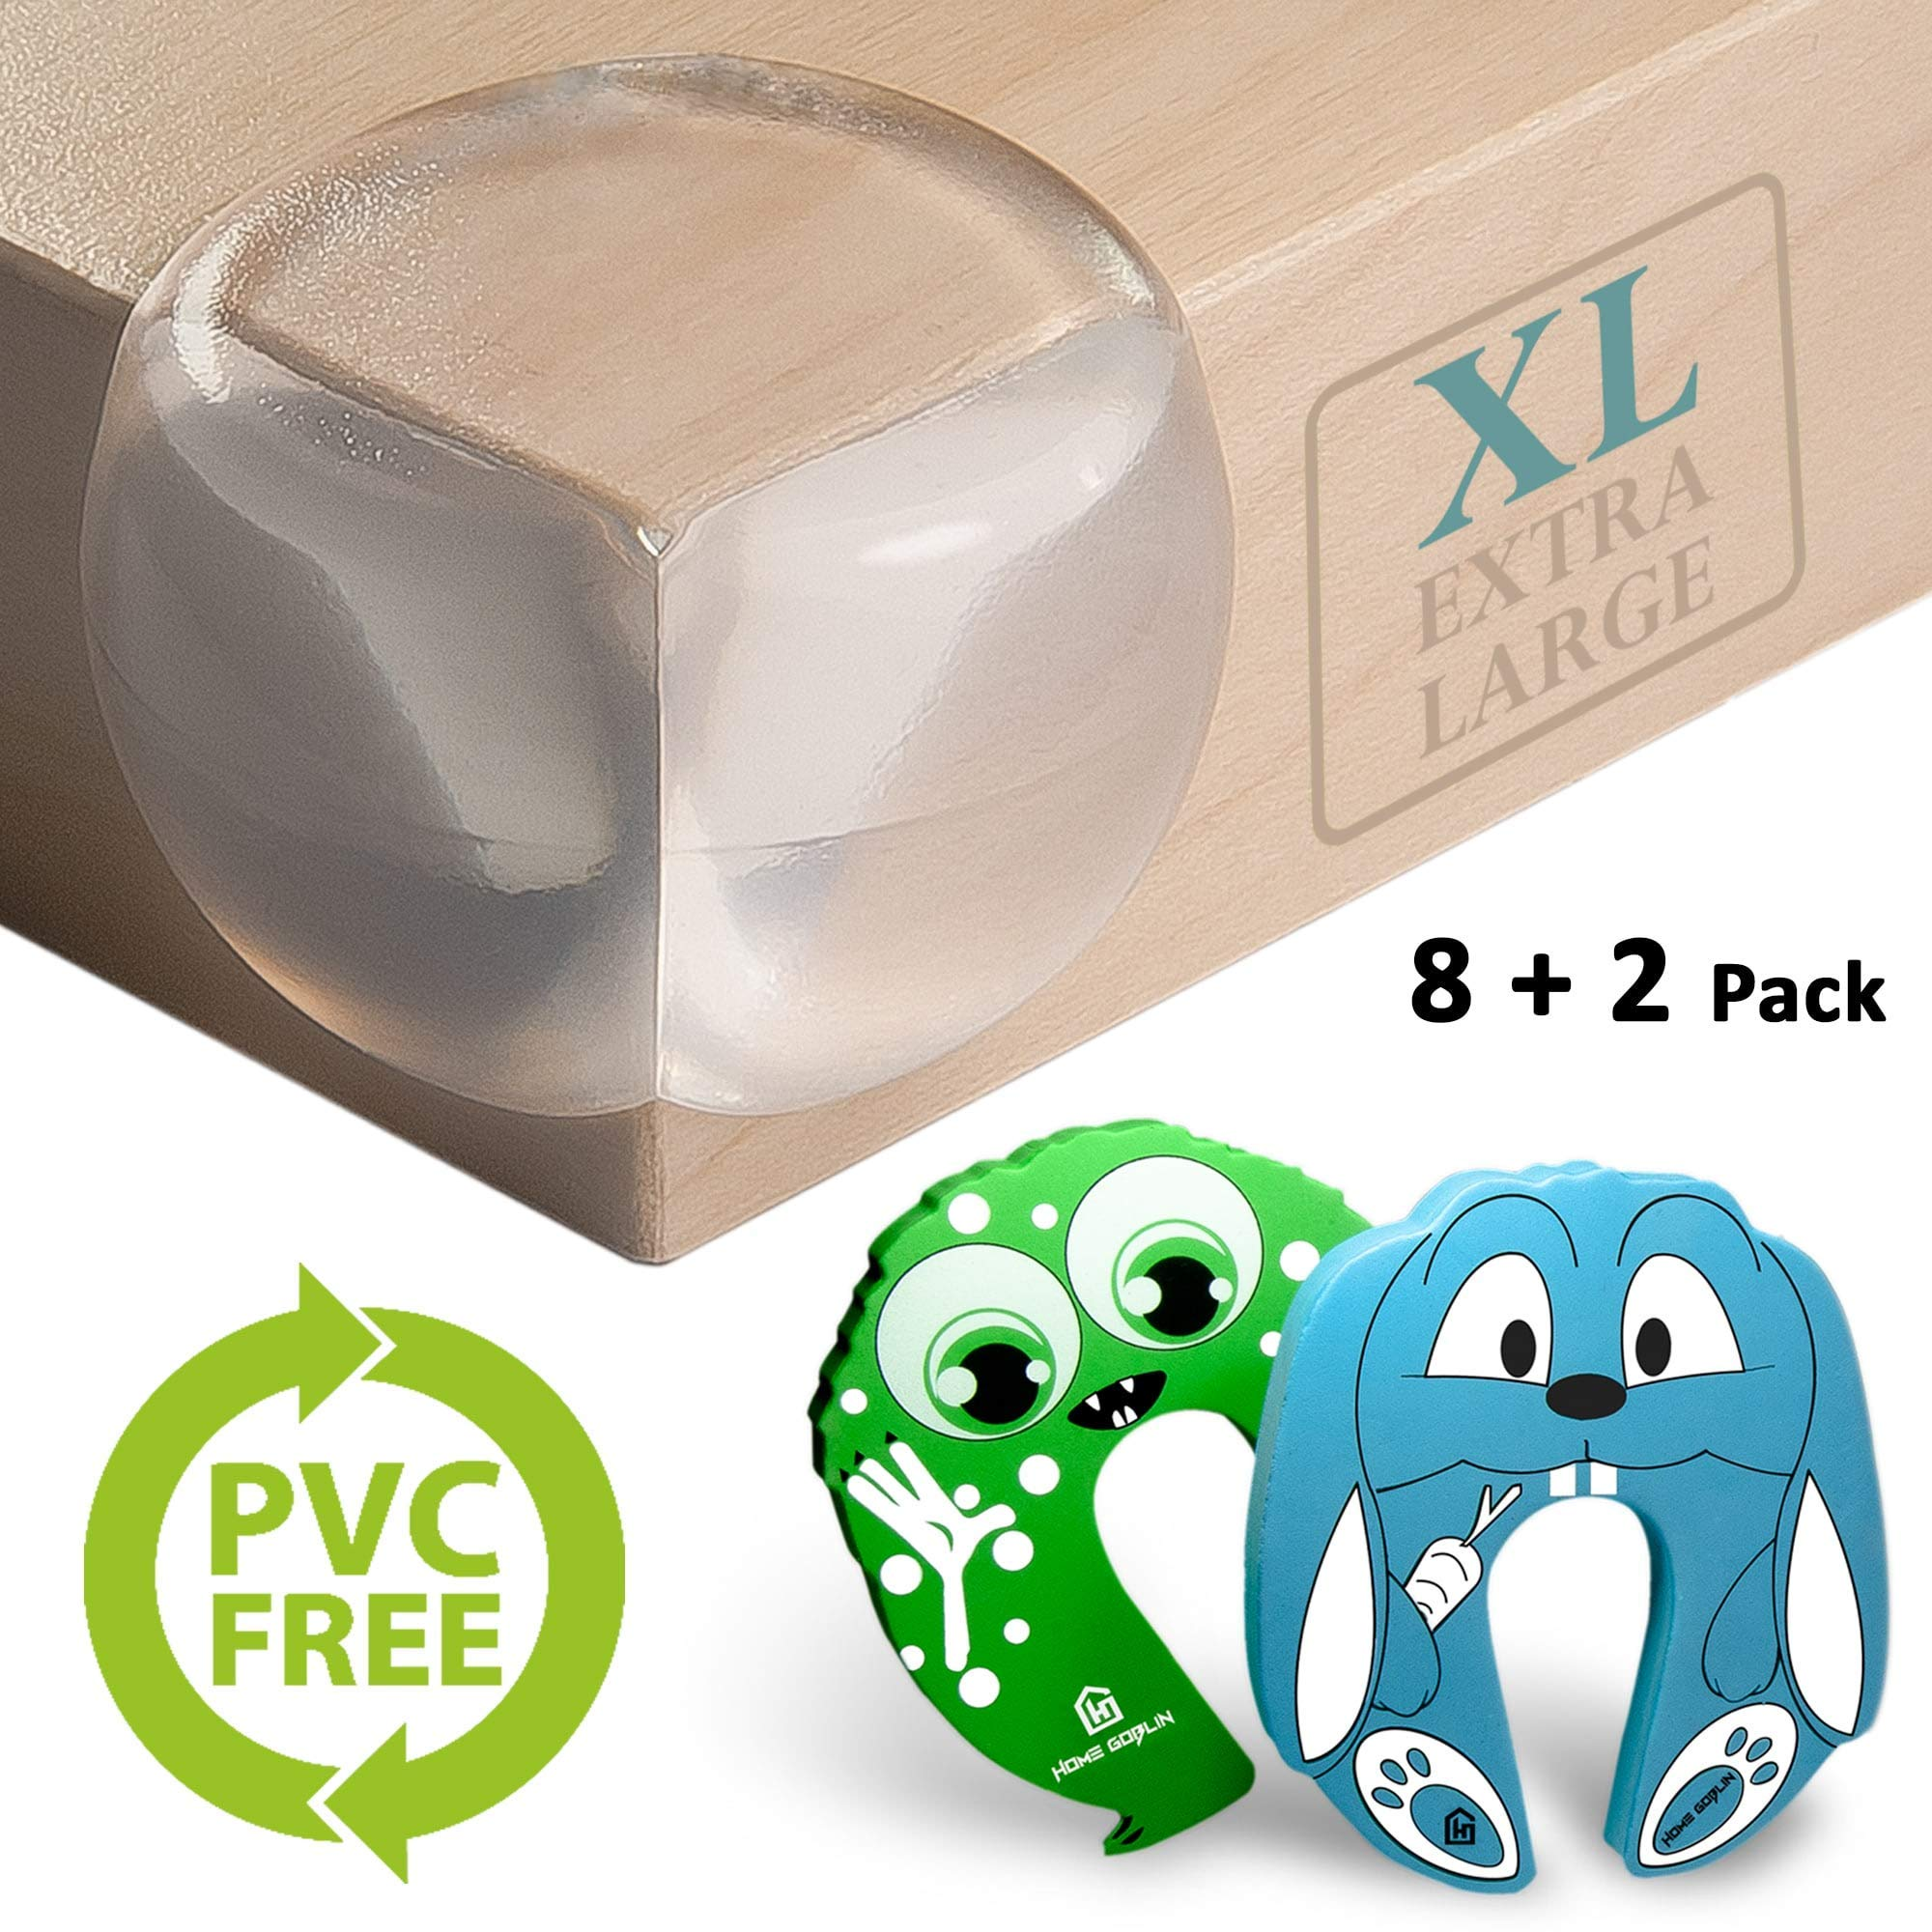 Corner Guards PVC Free- Extra Large for Safety | X5 More Adhesive Power Pre-Applied | 200% Softer Material | 8+2 Pack | Baby Friendly | Aesthetically Clear + Child Door Finger Pinch Protectors